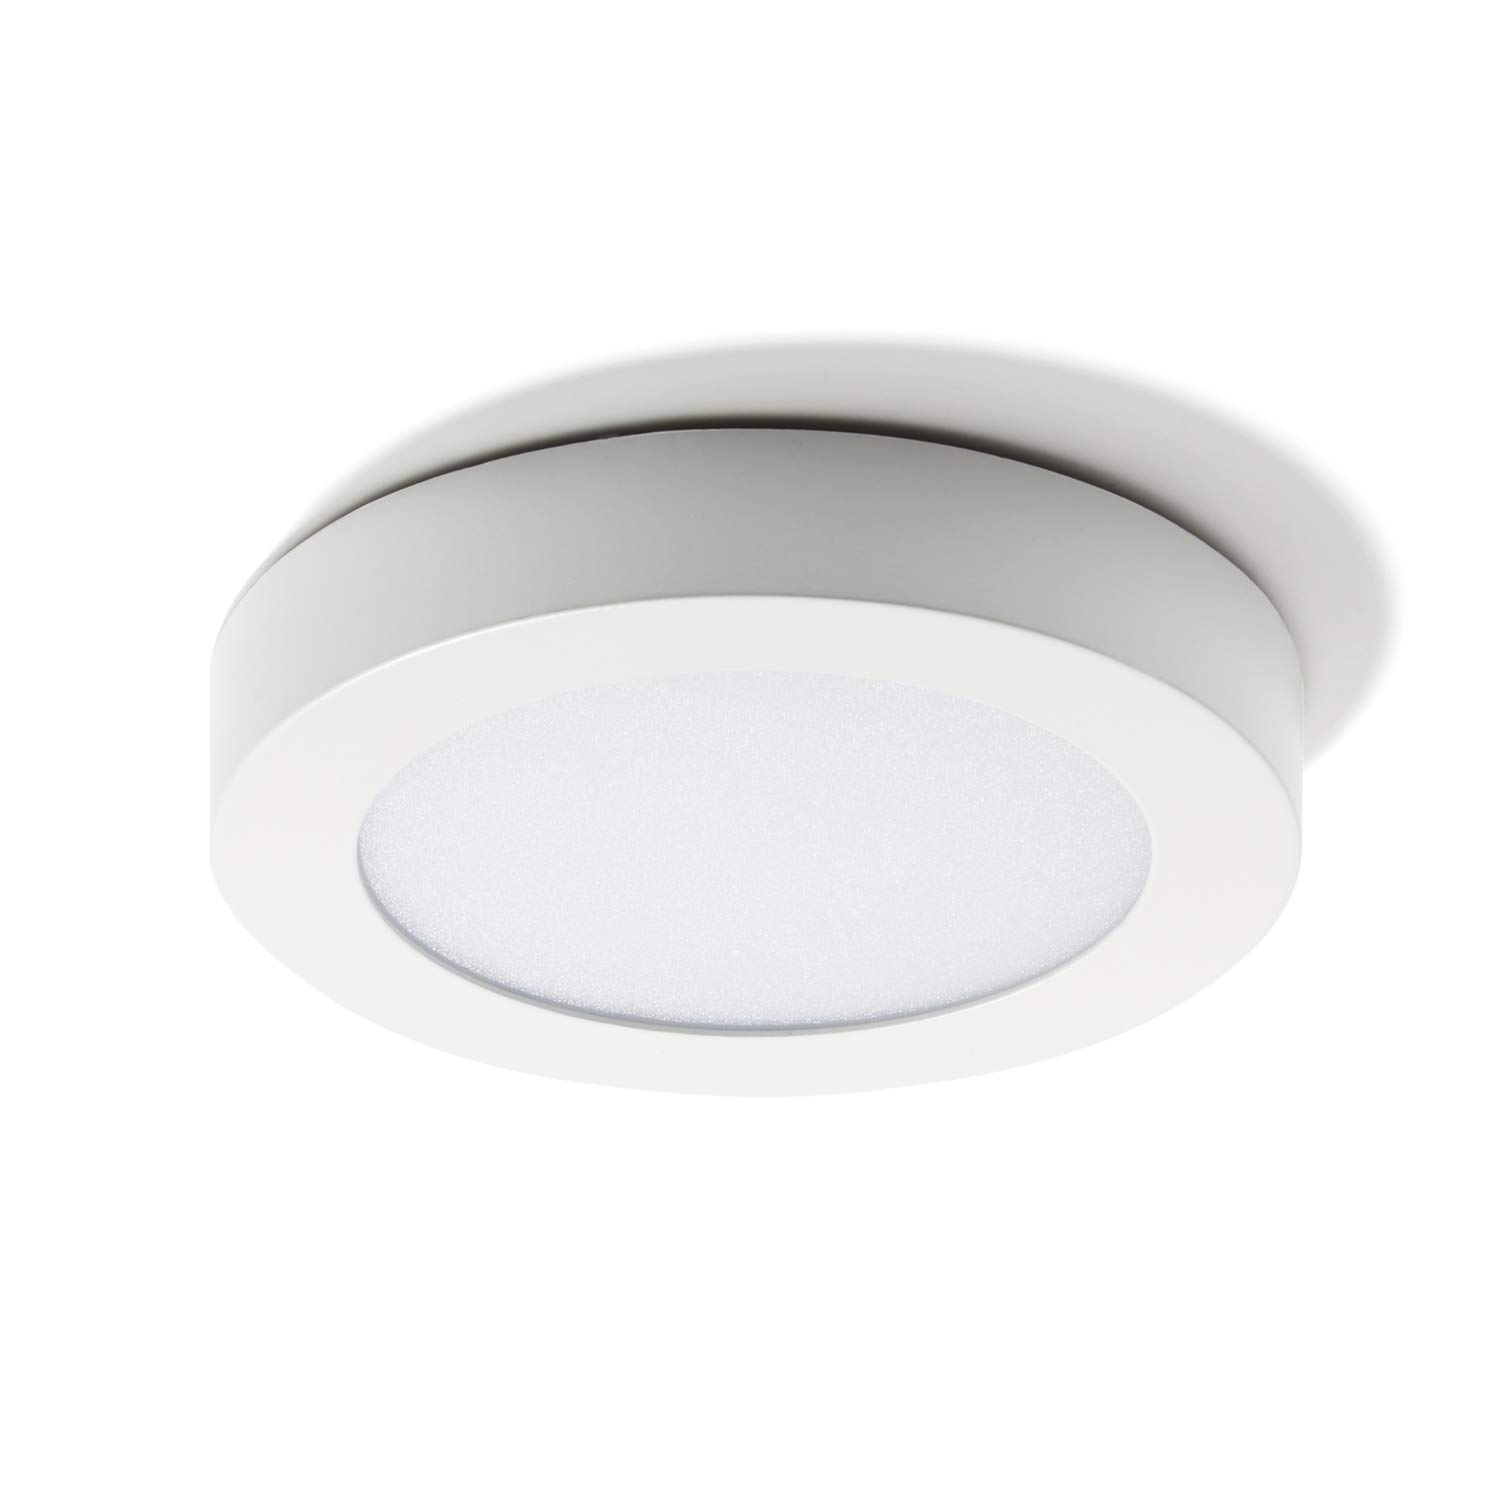 Damp Located 1200 Lumens ETL Listed LampLust LC003801 3000K Bright White 7 Inch LED Thin Disc Round Dimmable Lighting Fixture Round Flush Mount Ceiling Light